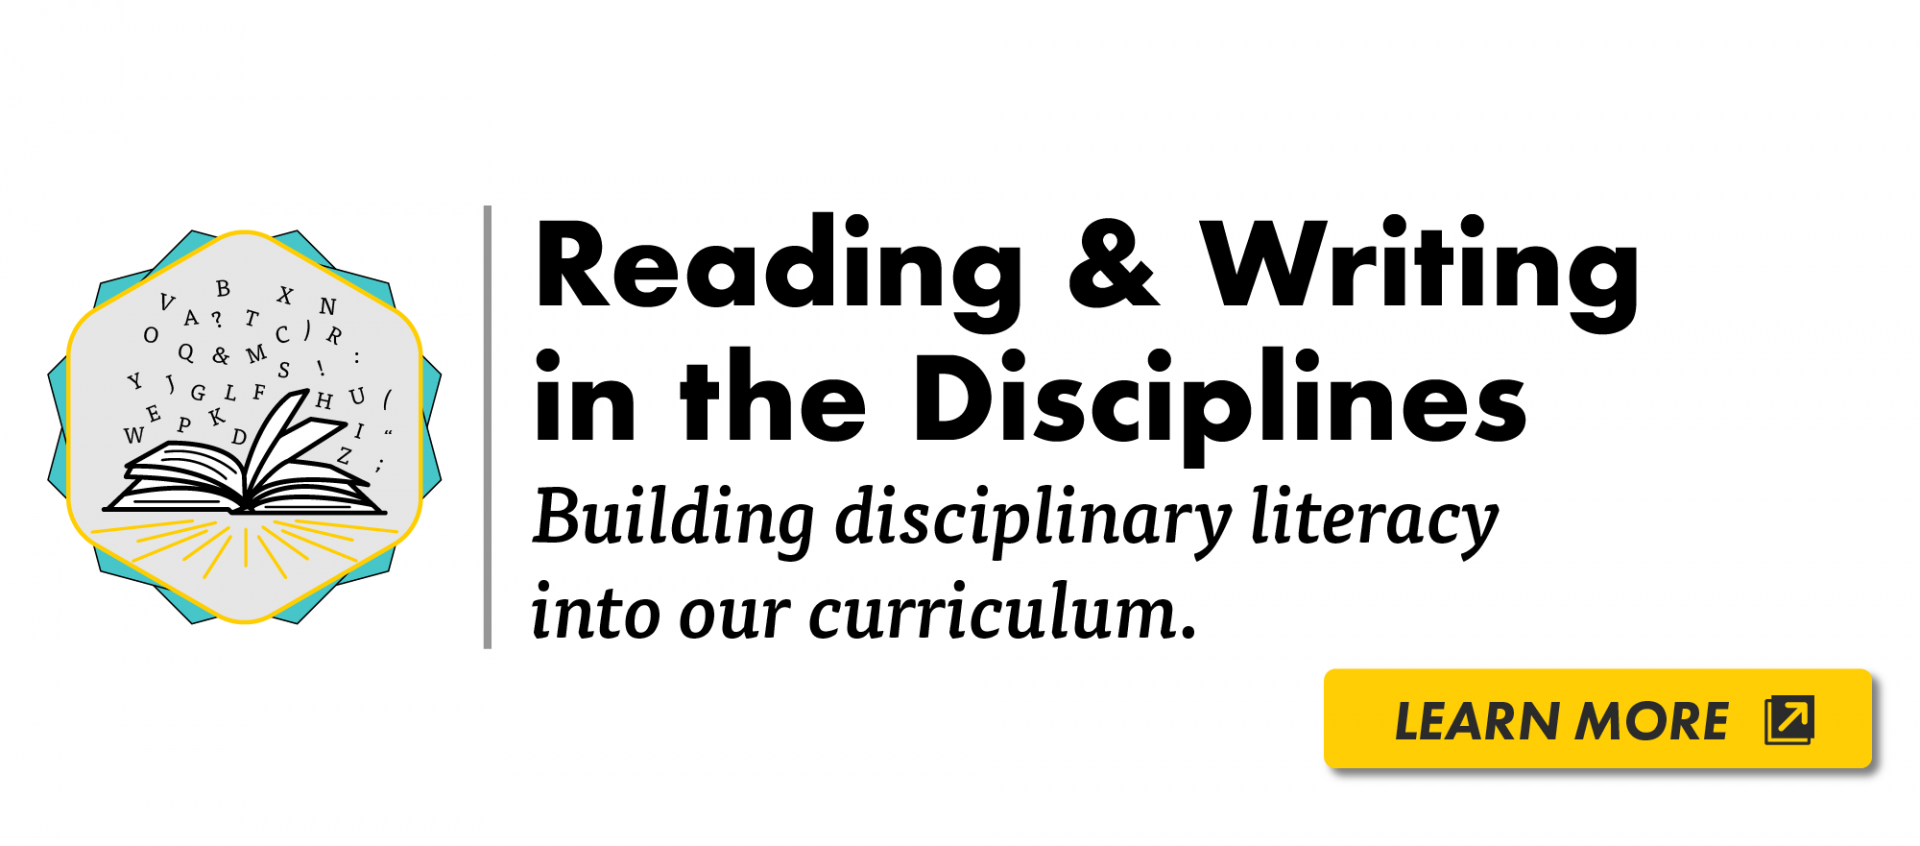 Reading and Writing in the Disciplines learn more